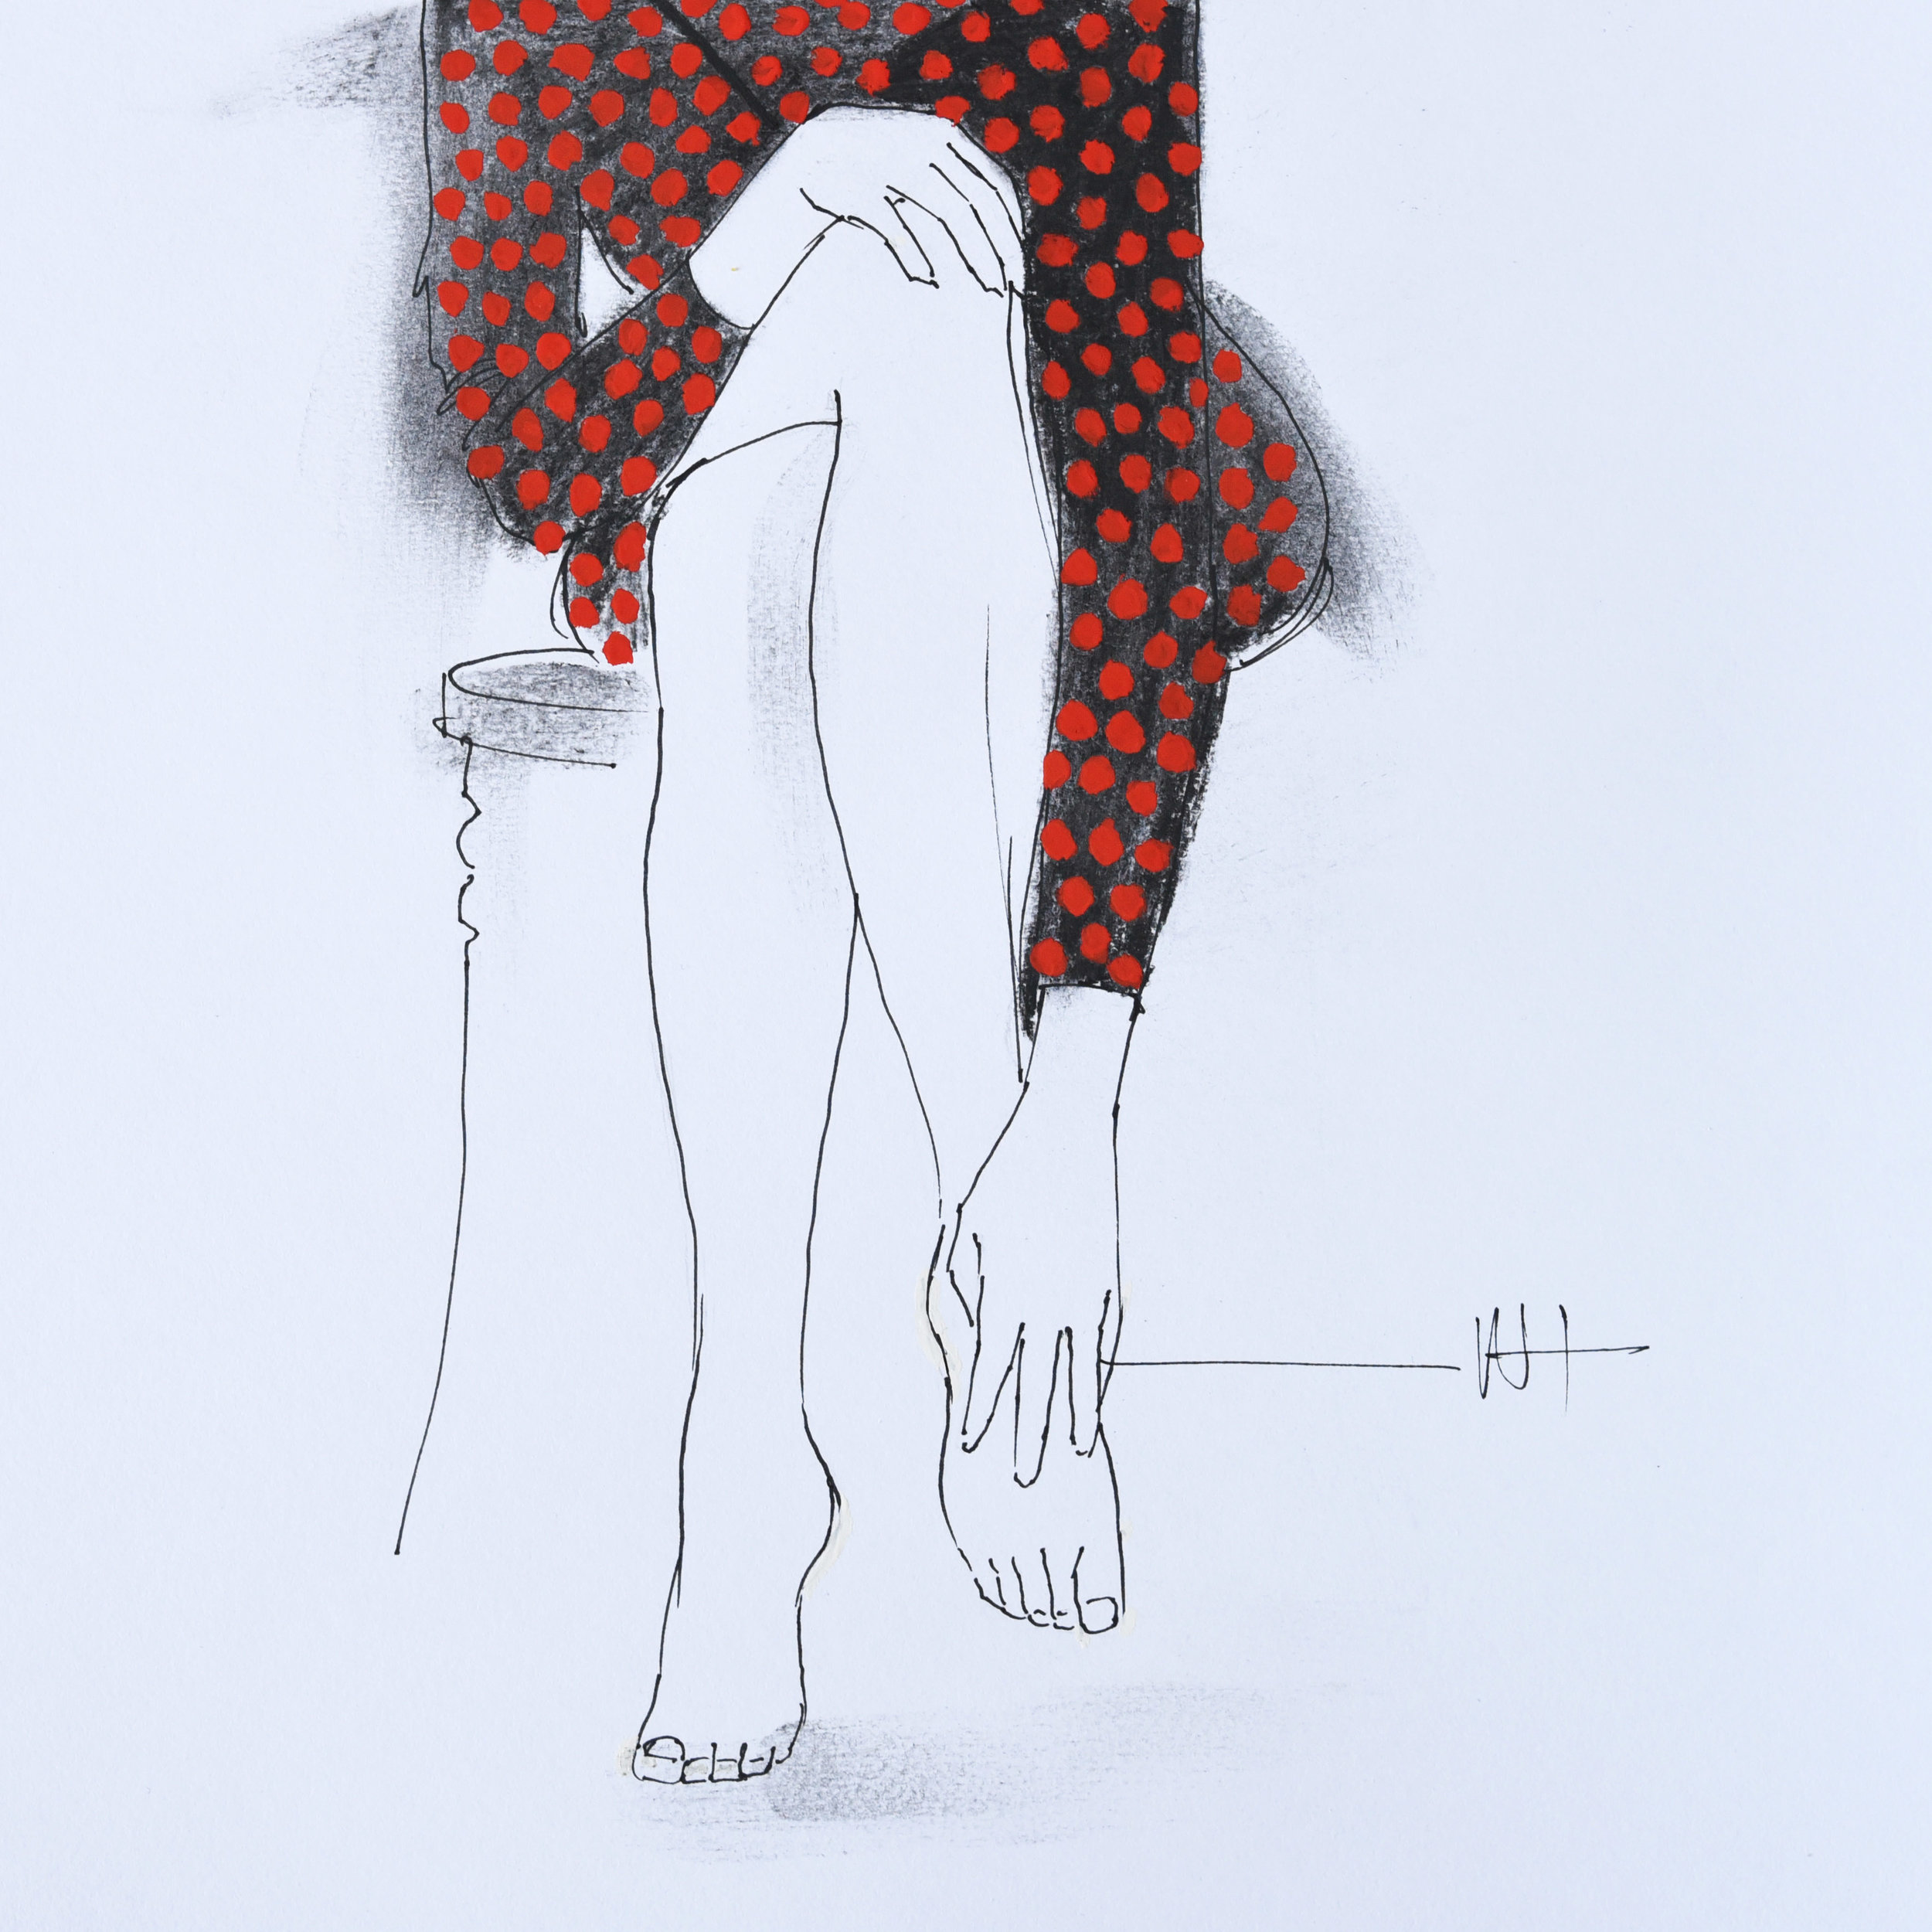 Minimal fashion illustration line drawing of a woman in a red and black polka dot dress.